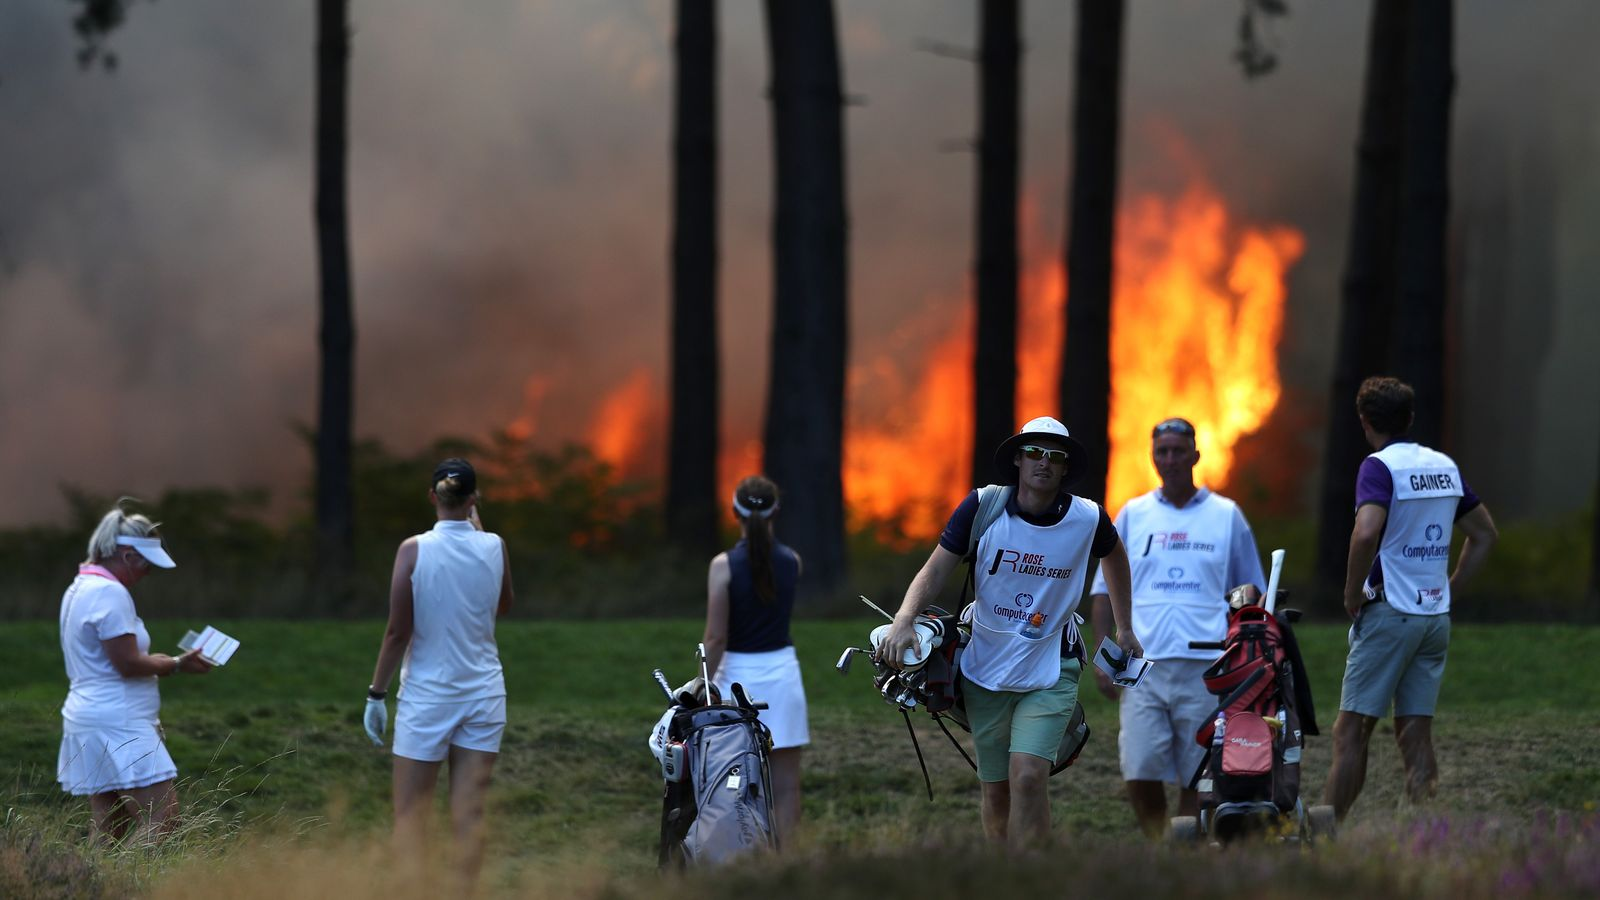 Wentworth Fire Rose Ladies Series Grand Final Cancelled Golf News Sky Sports